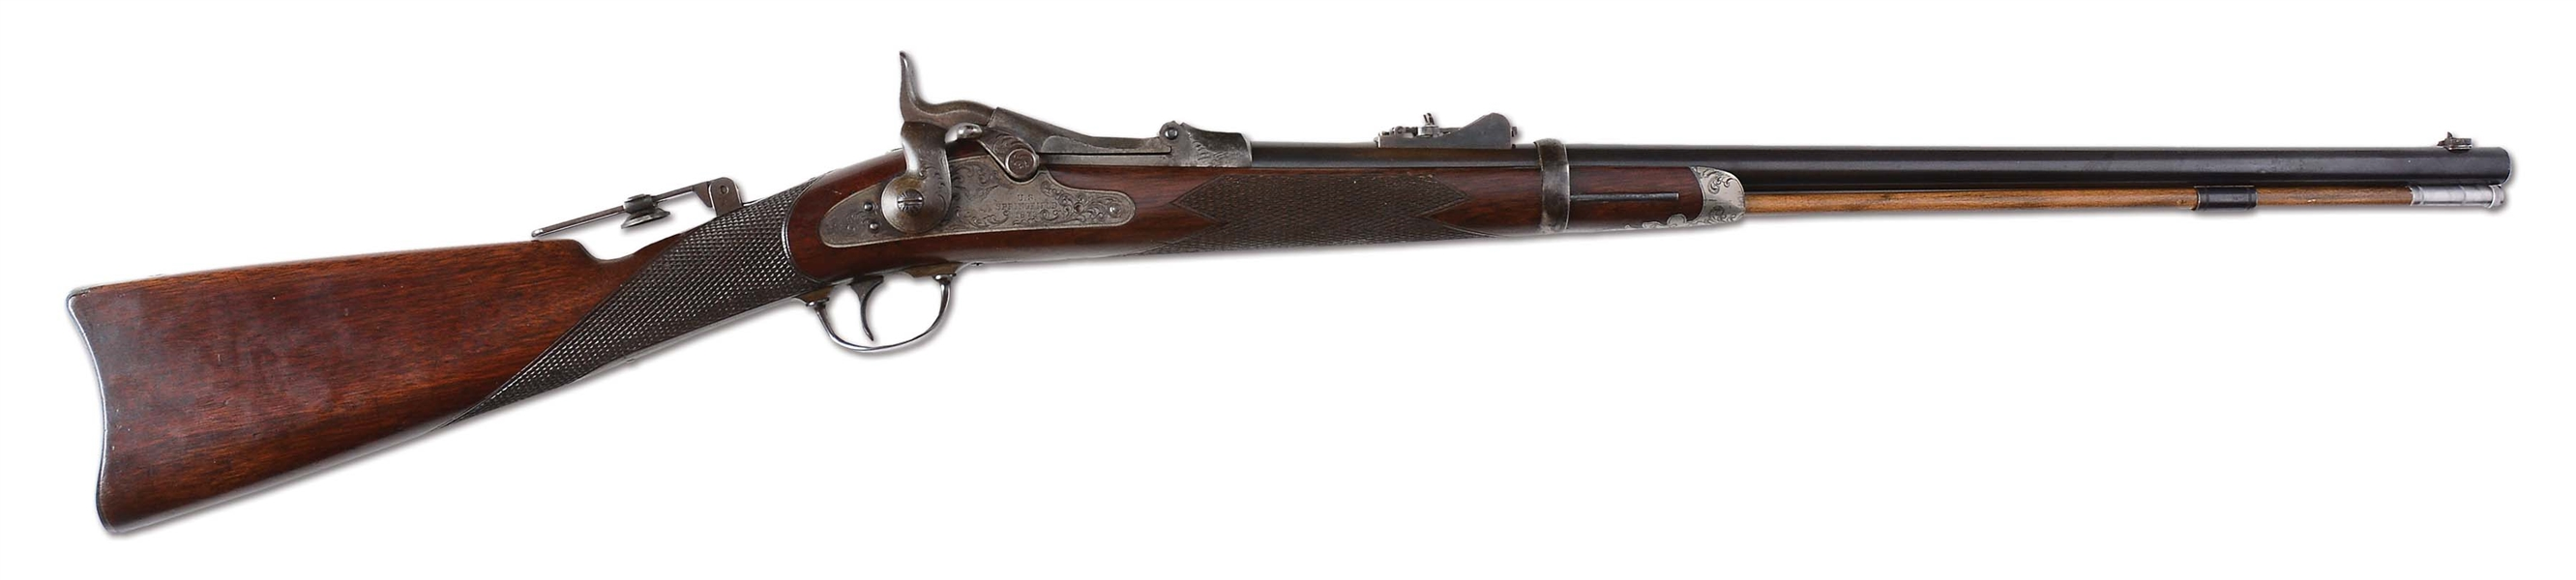 "(A) ENGRAVED SPRINGFIELD 1875 FIRST MODEL  OFFICERS TRAPDOOR RIFLE INSCRIBED ""J. H. ROLLINS""."